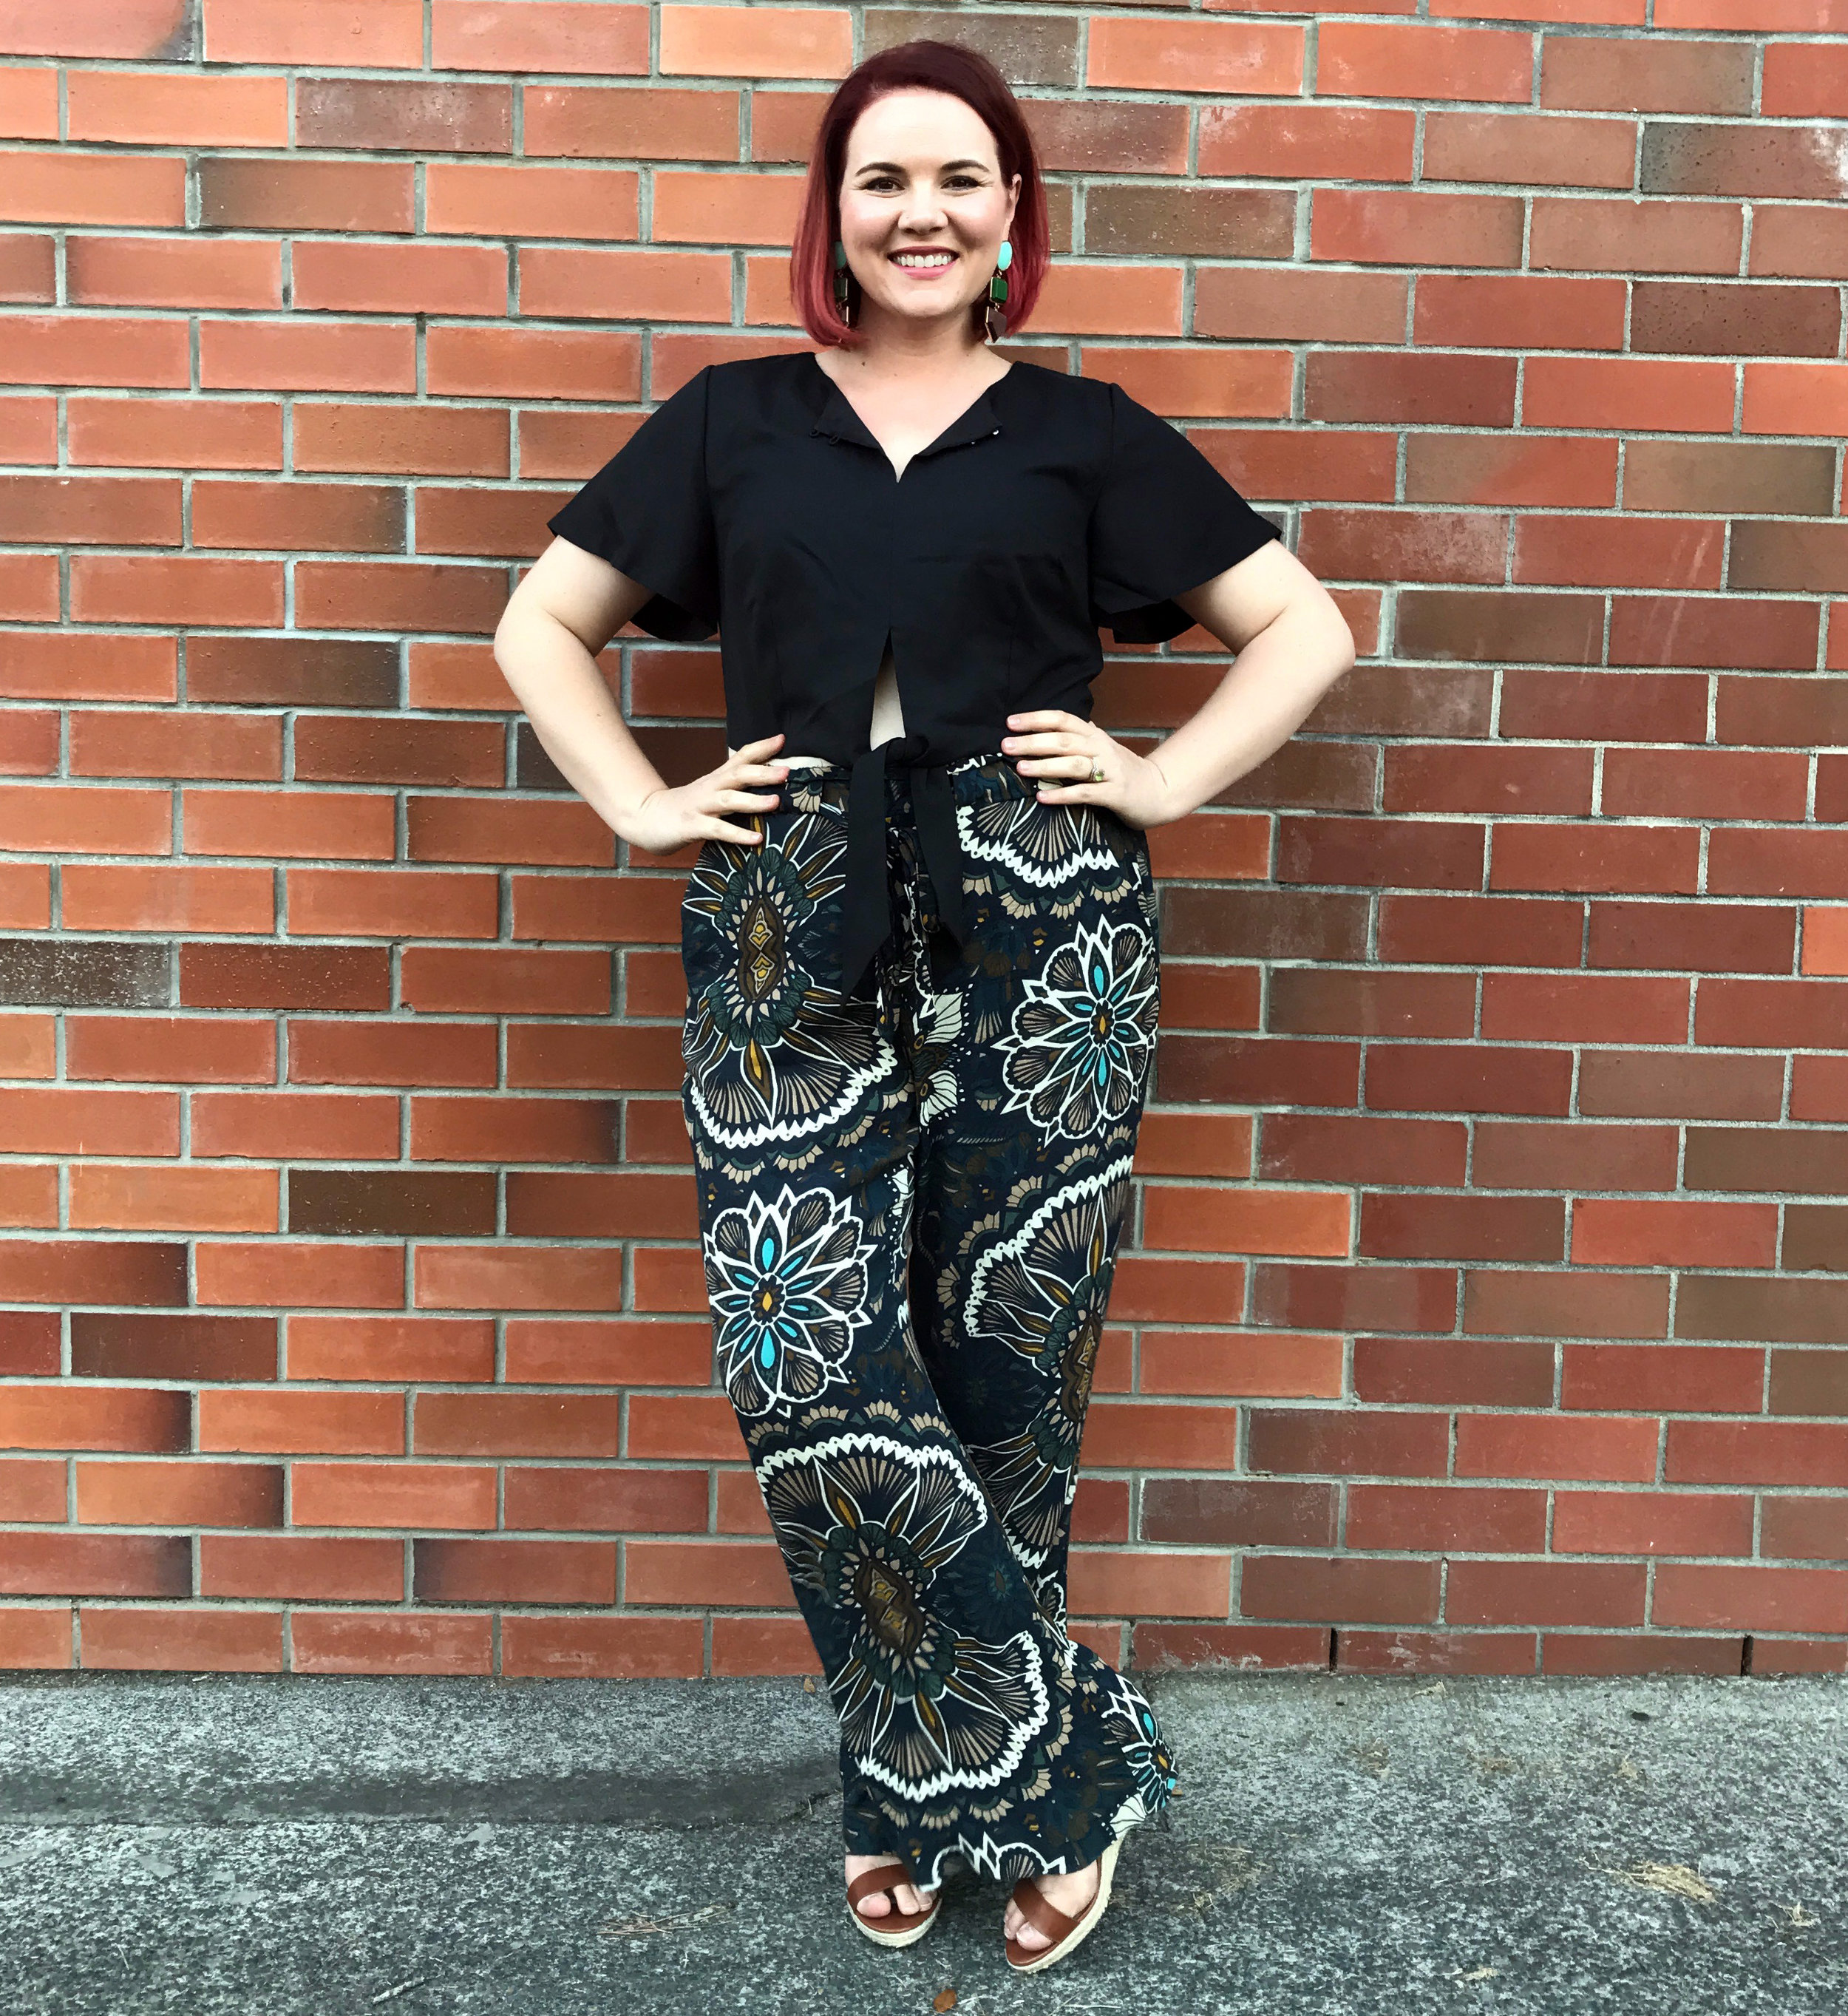 Earrings and Pants from H&M, shoes from Target Australia.